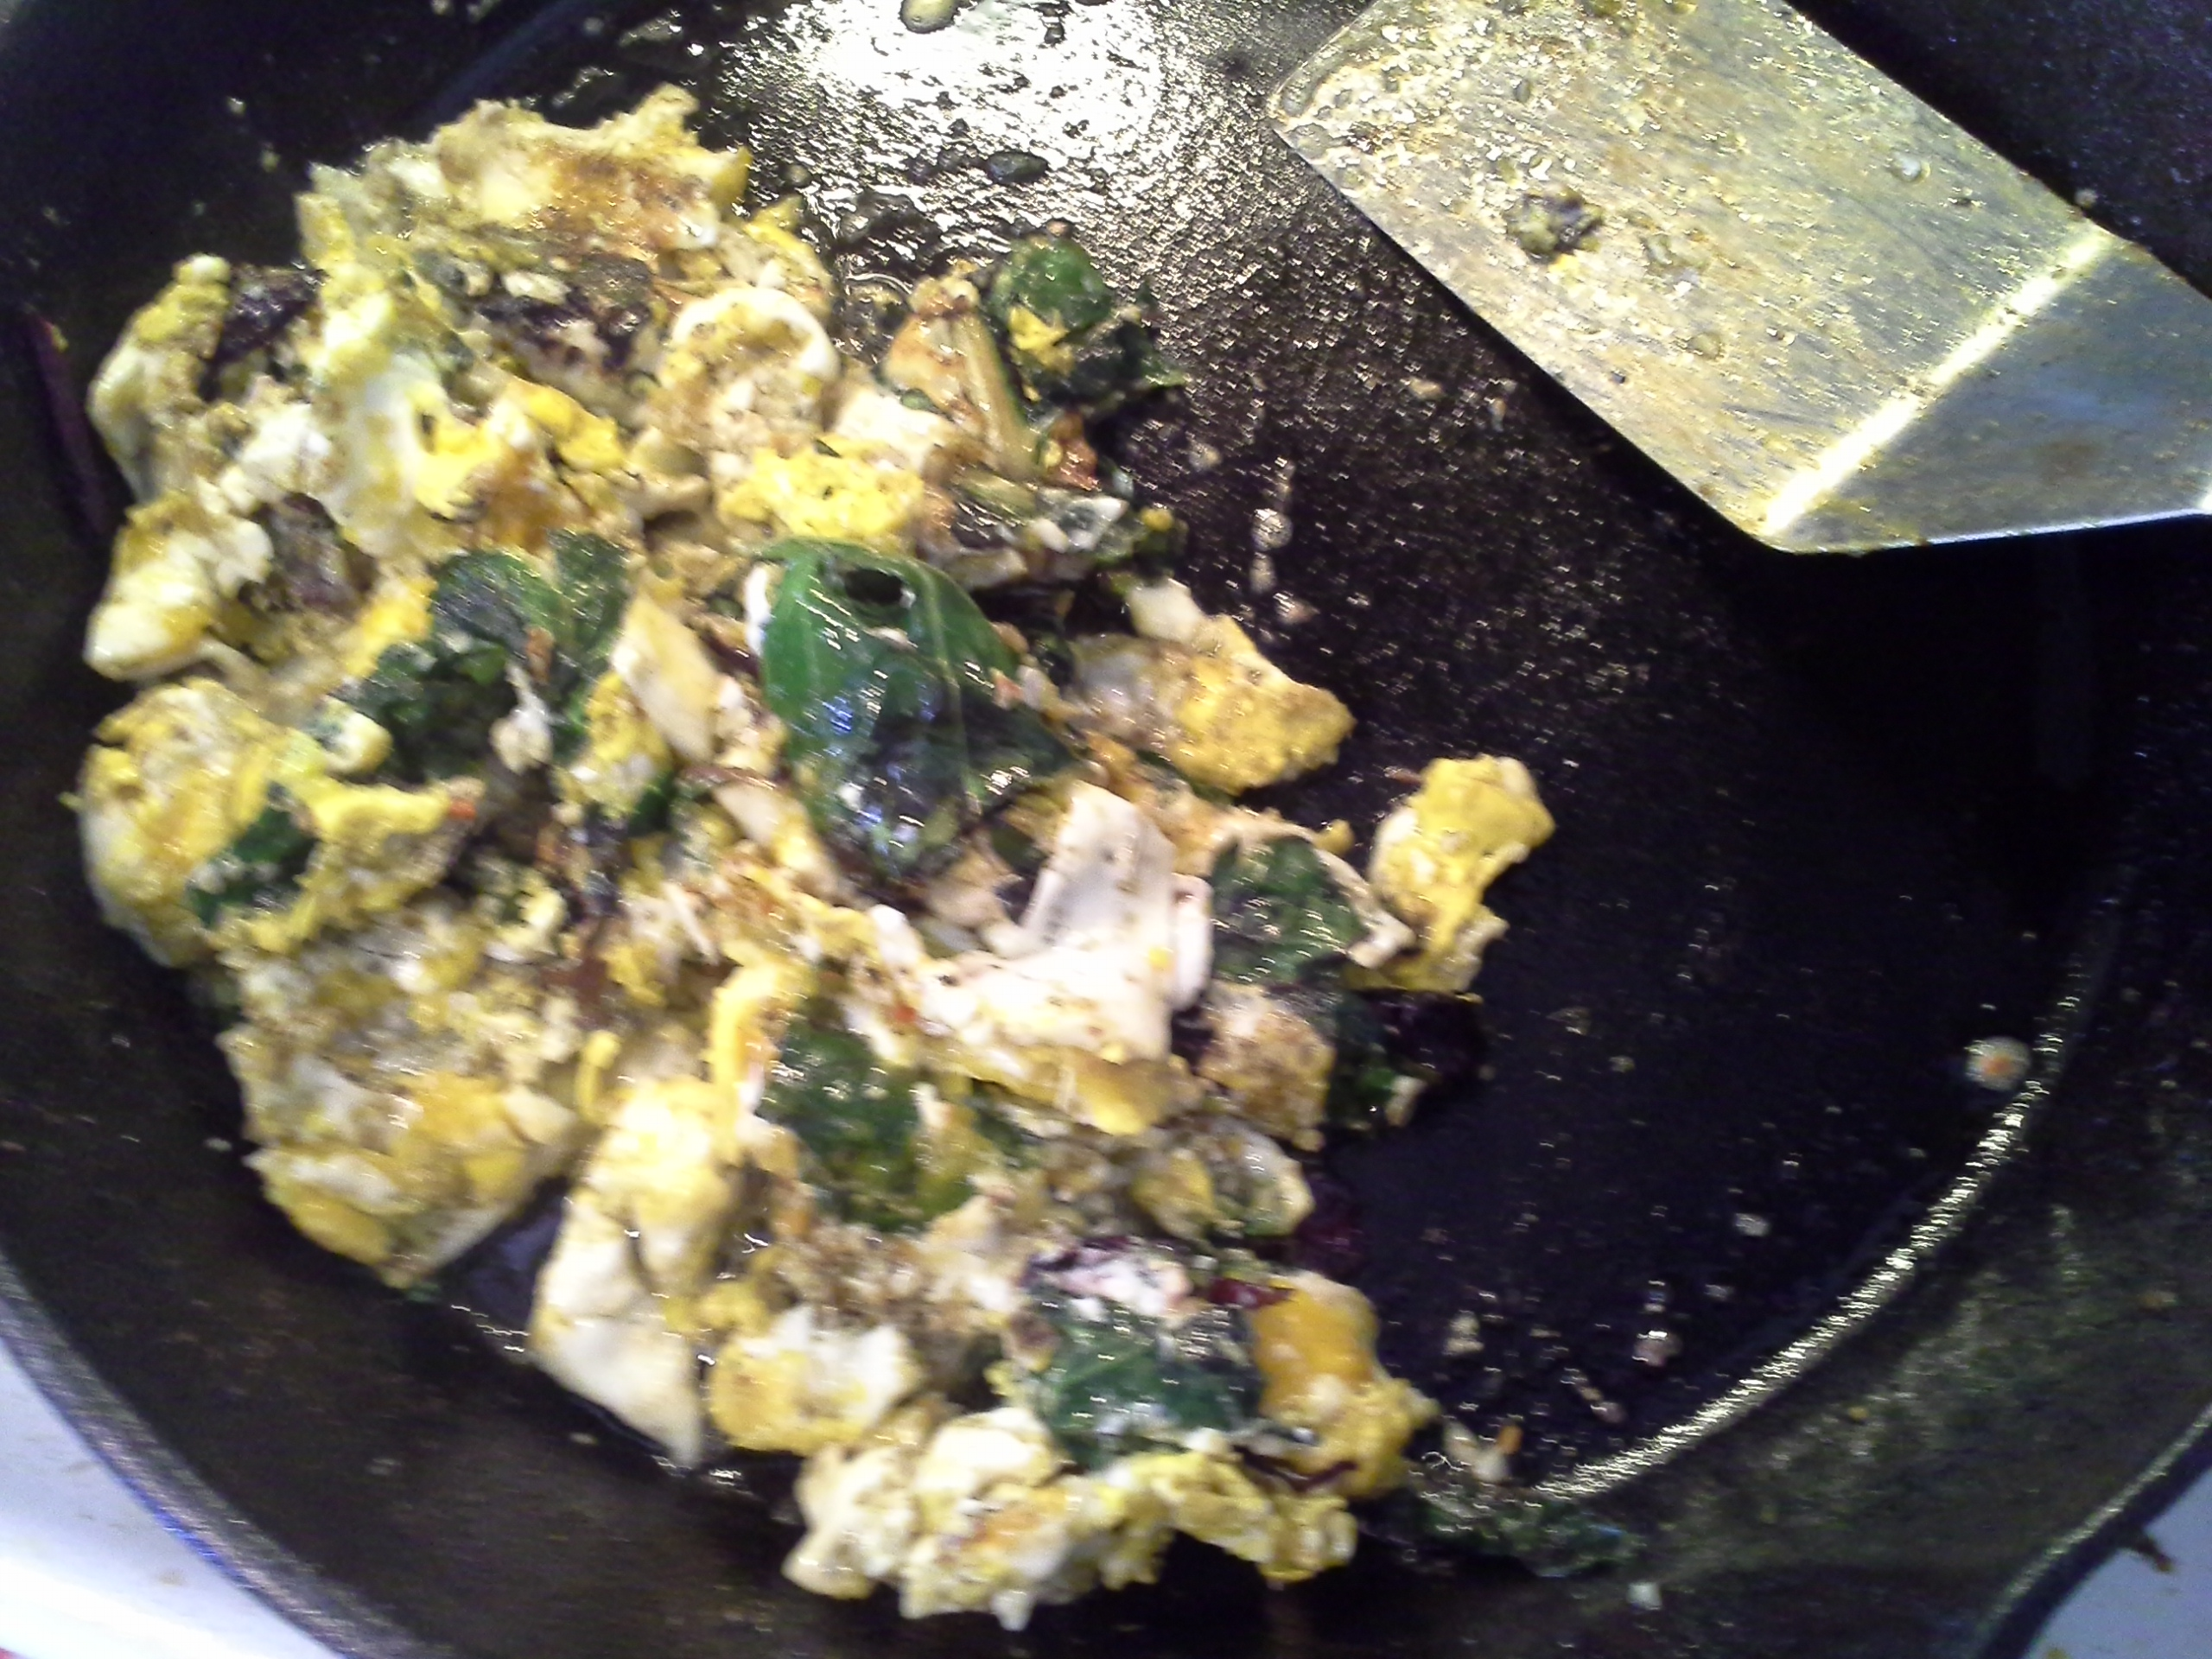 Breakfast: 9:25 a.m. | 4 eggs, 2 oz. greens mix, 2 Tbsp. coconut oil, herbs & spices